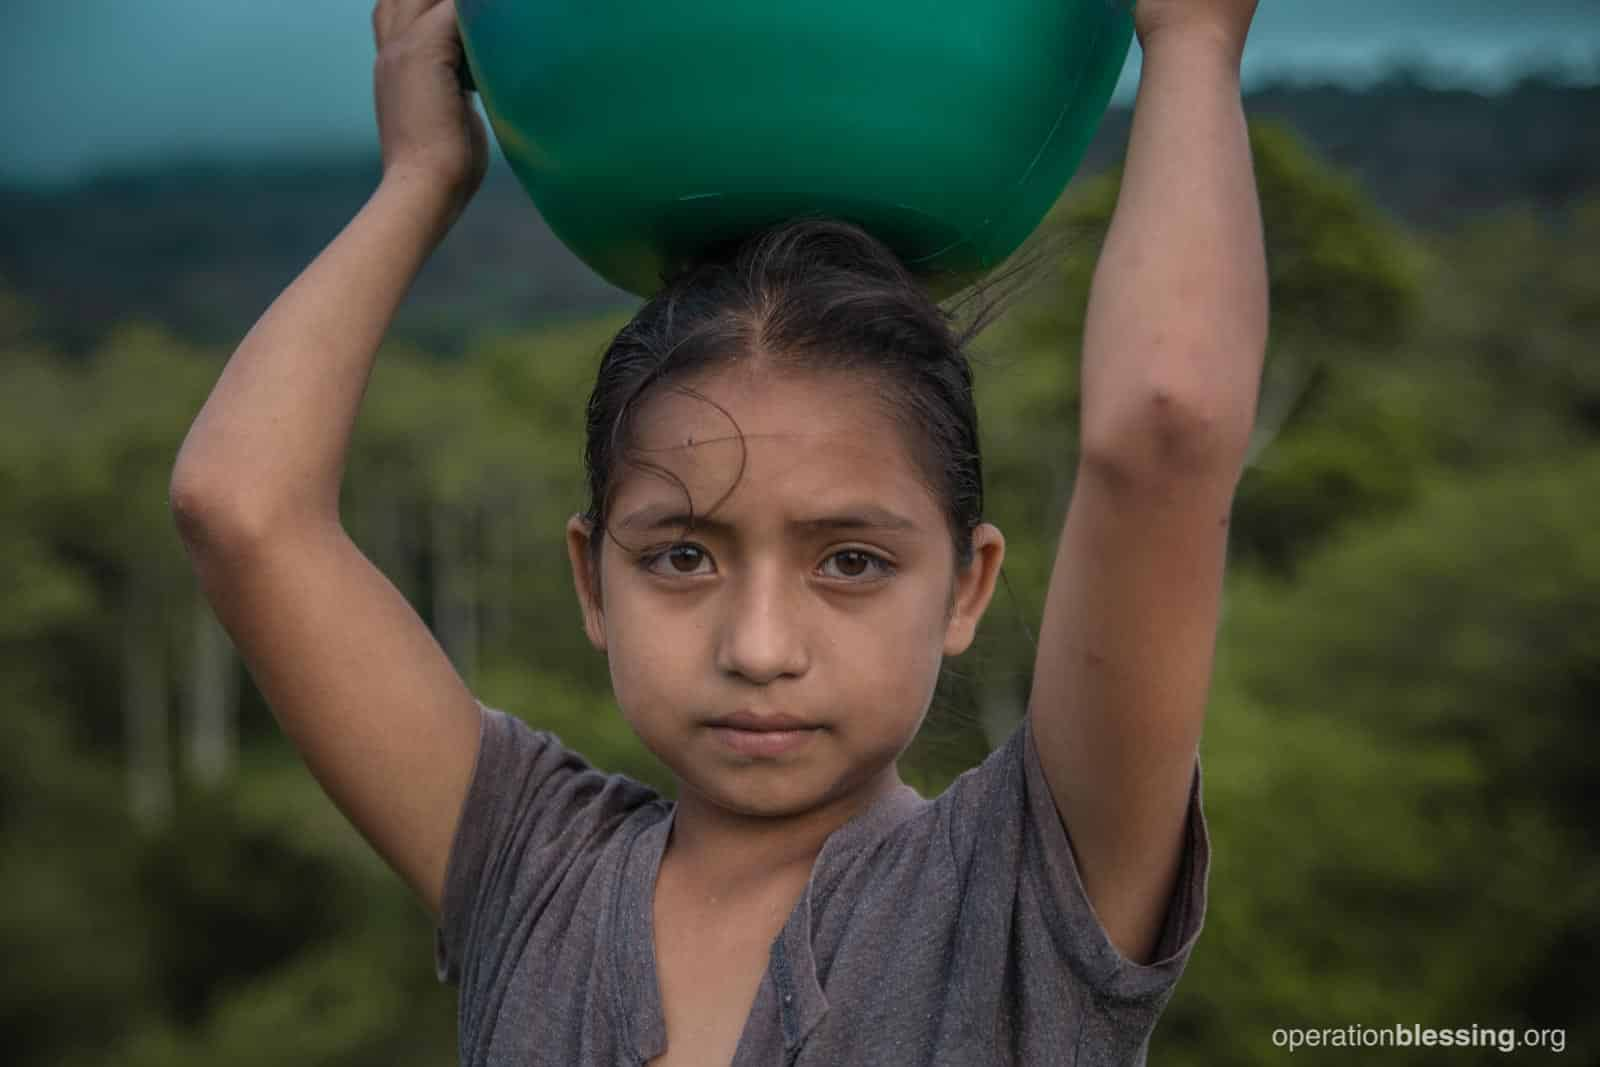 Nelly, 11, and other members of a community in rural Honduras walked long distances to retrieve small amounts of clean water.